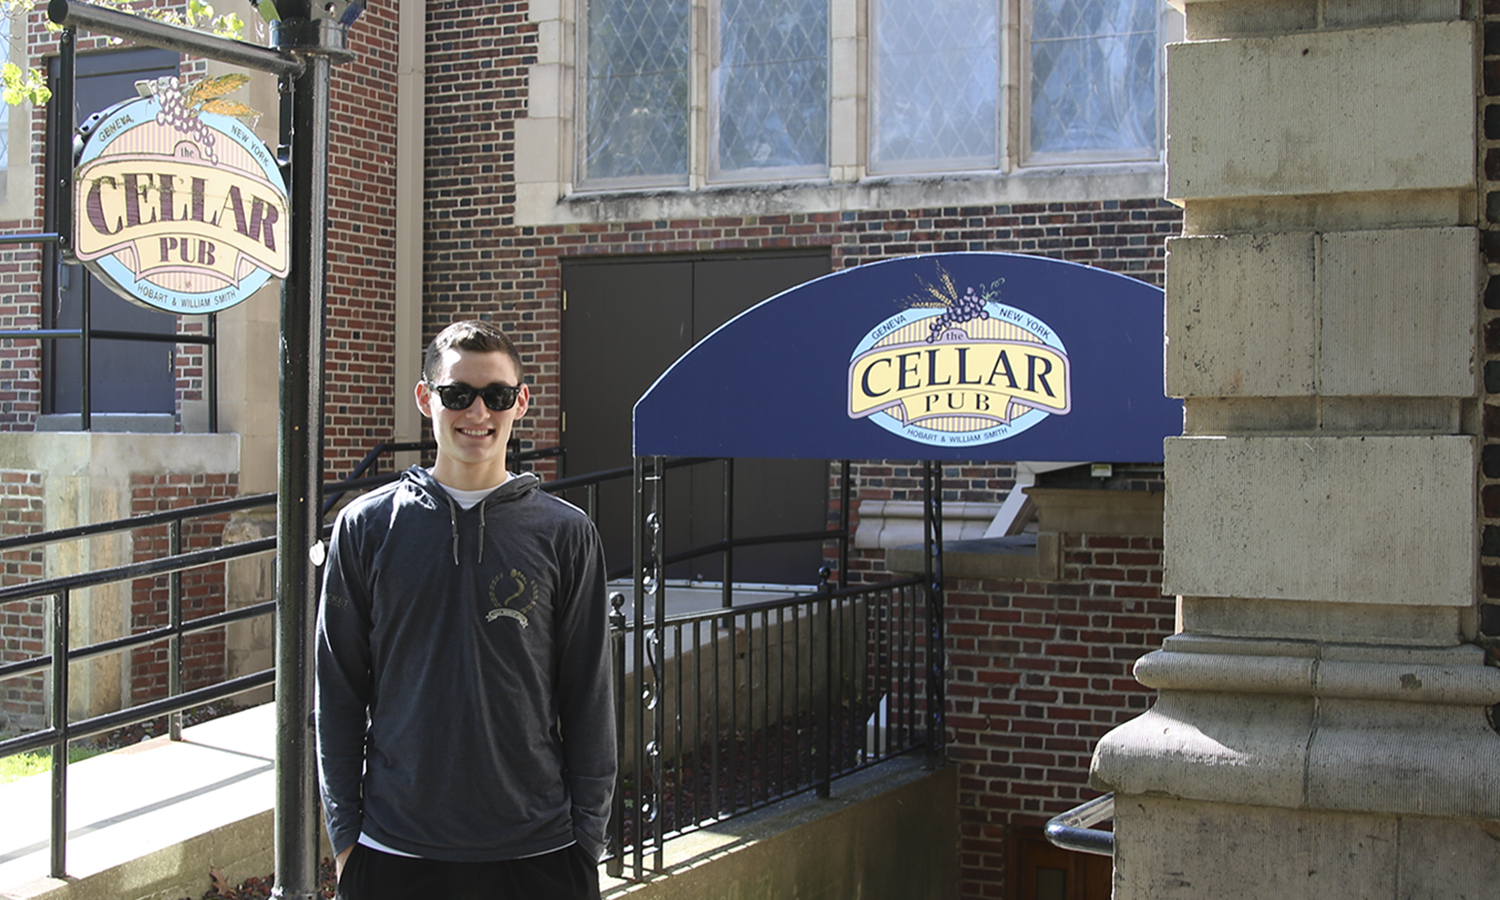 Josh Wasserman '20 talks about his father, Pete Wasserman '87 who founded the Cellar Pub as a student. It's continuation was insured by Josh's mother, Karen Wasserman '89. The Cellar Pub is Josh's favourite place to eat on campus, and the Pub always reminds him of them.